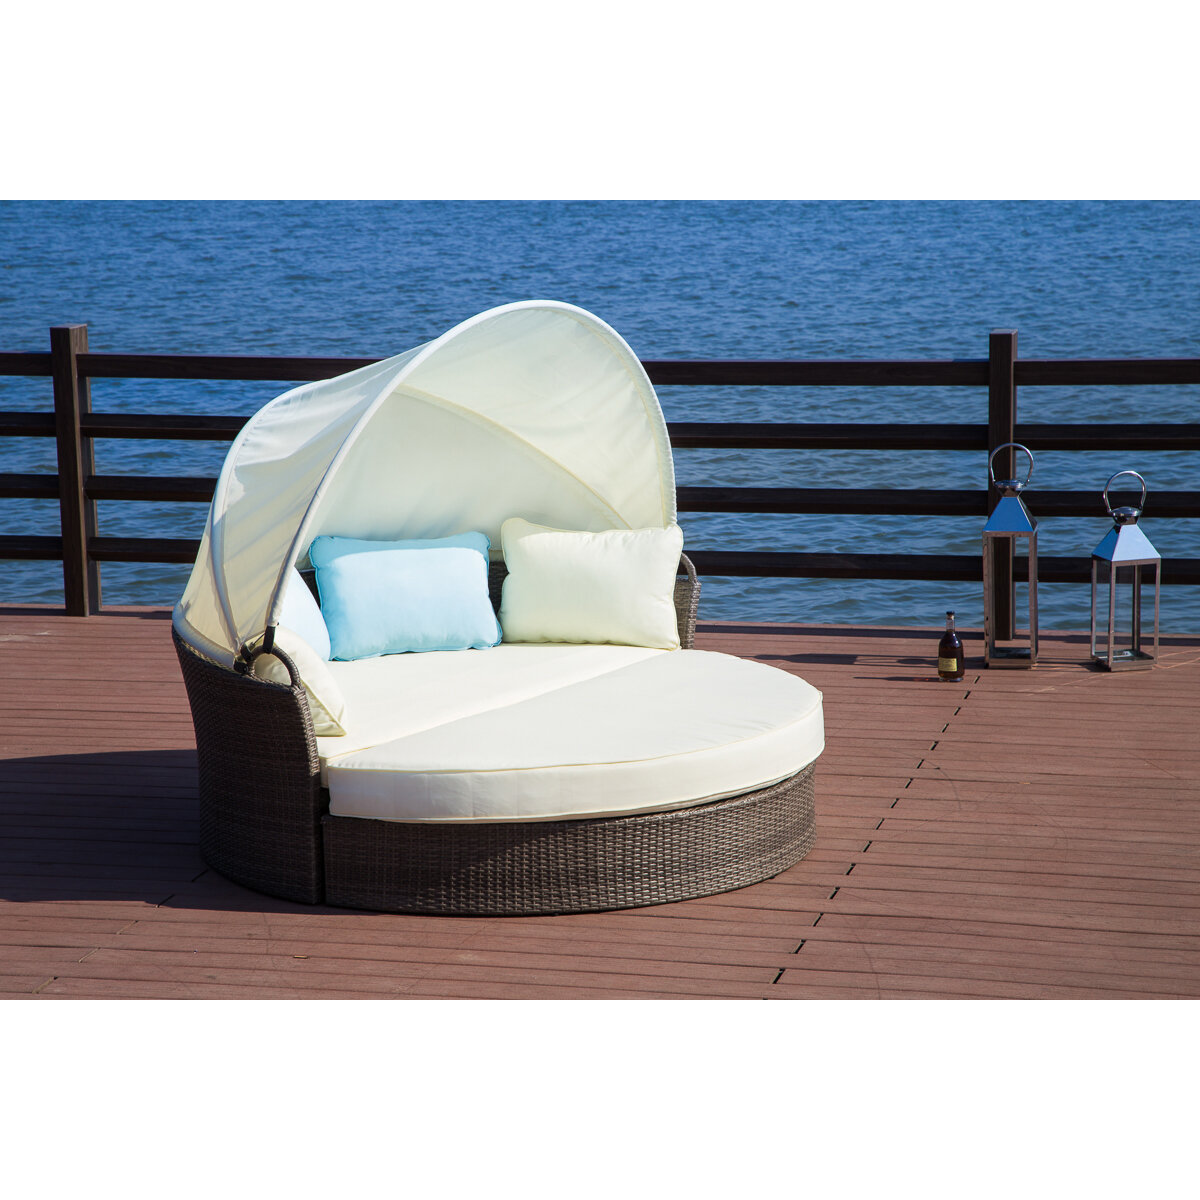 Harlow patio daybed with cushions reviews joss main